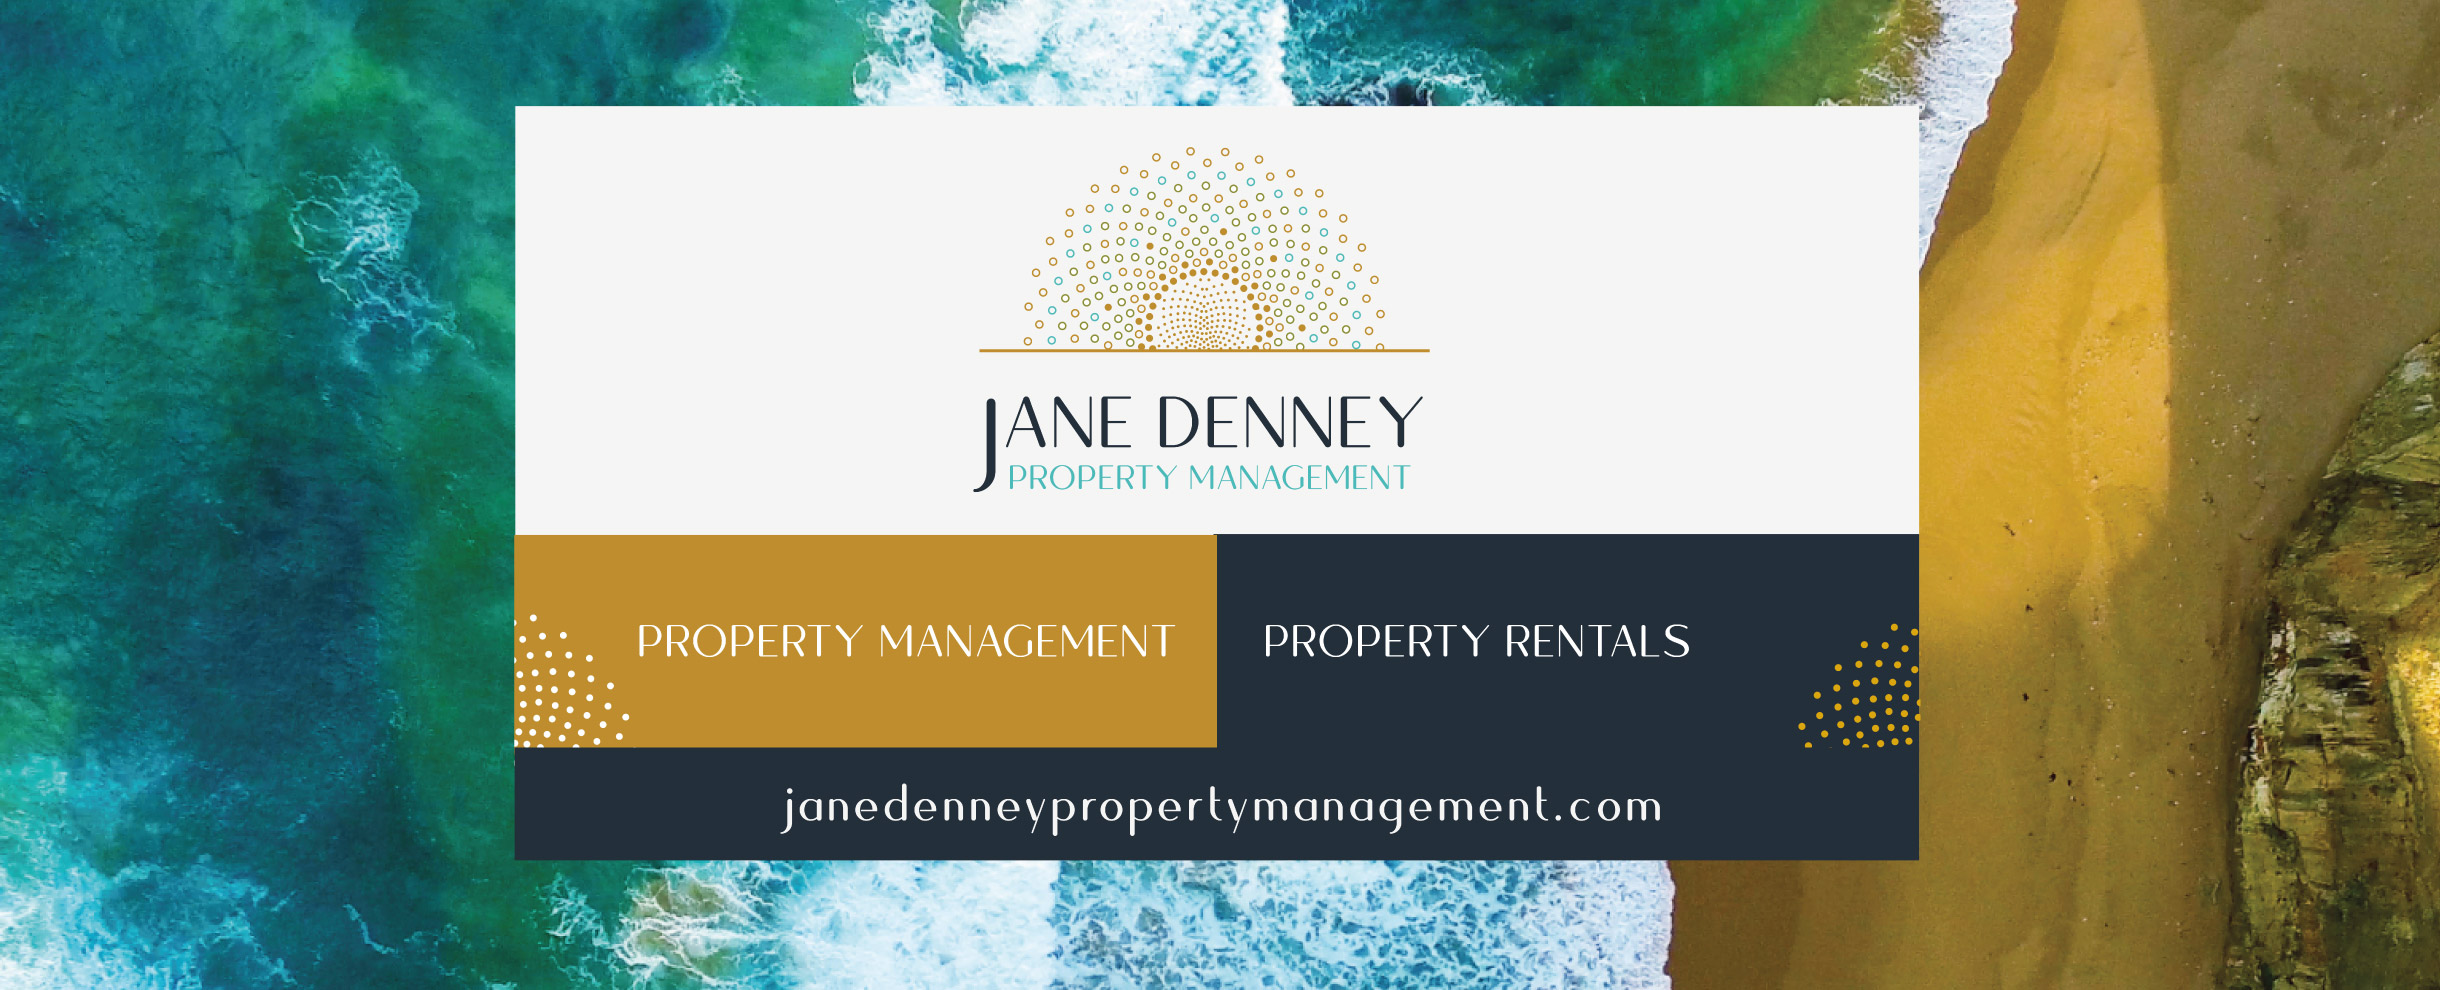 Quints Design co - Portfolio - Jane Denney